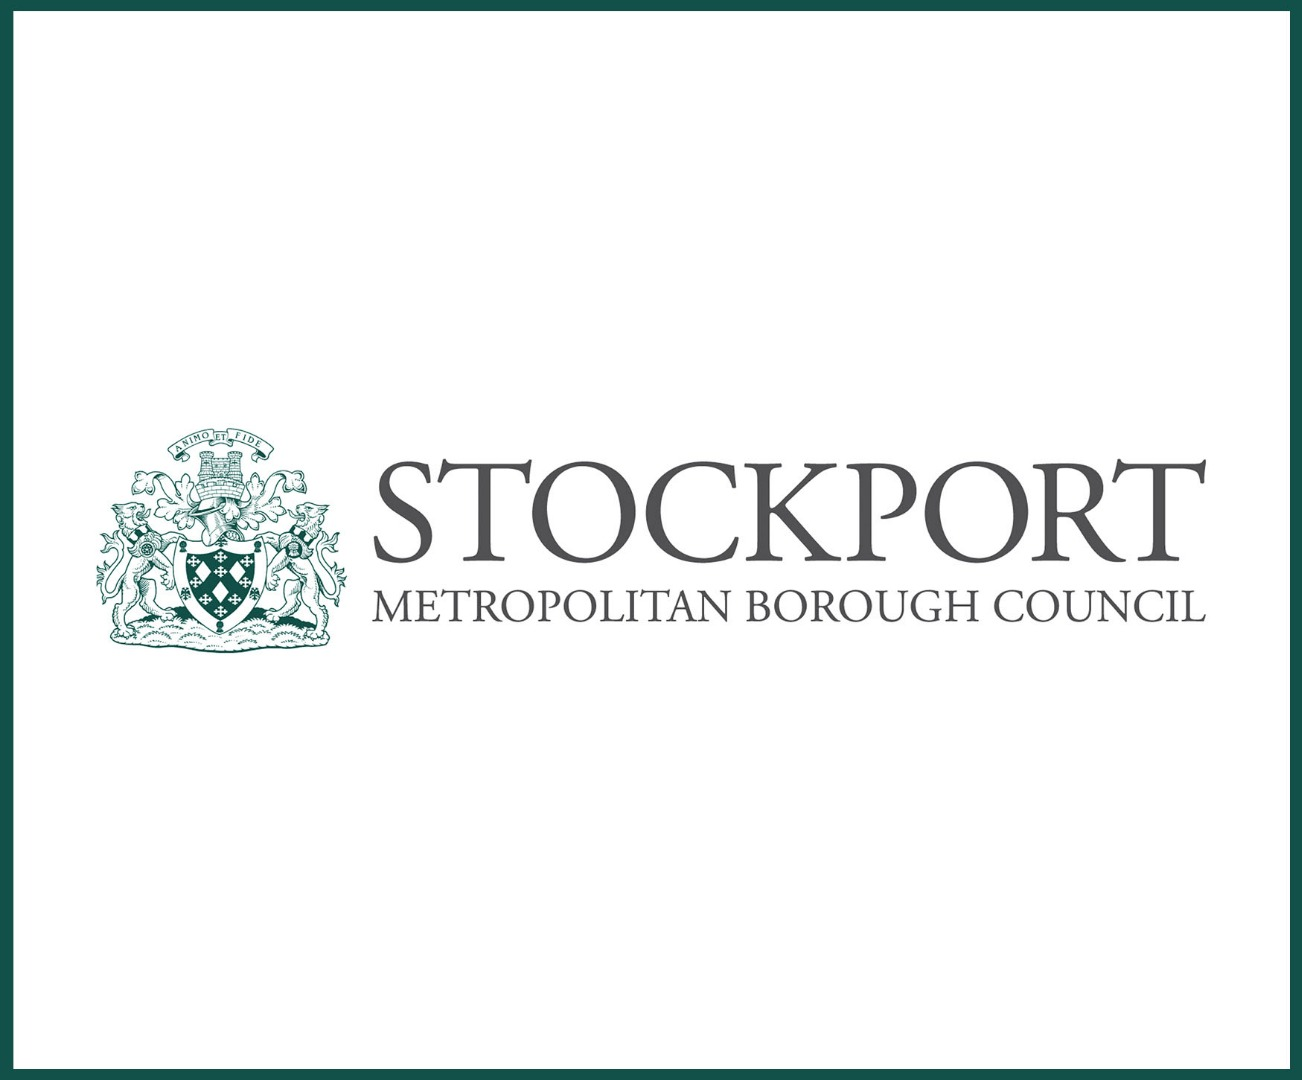 Stockport businesses prepare for a digital future at Business Summit